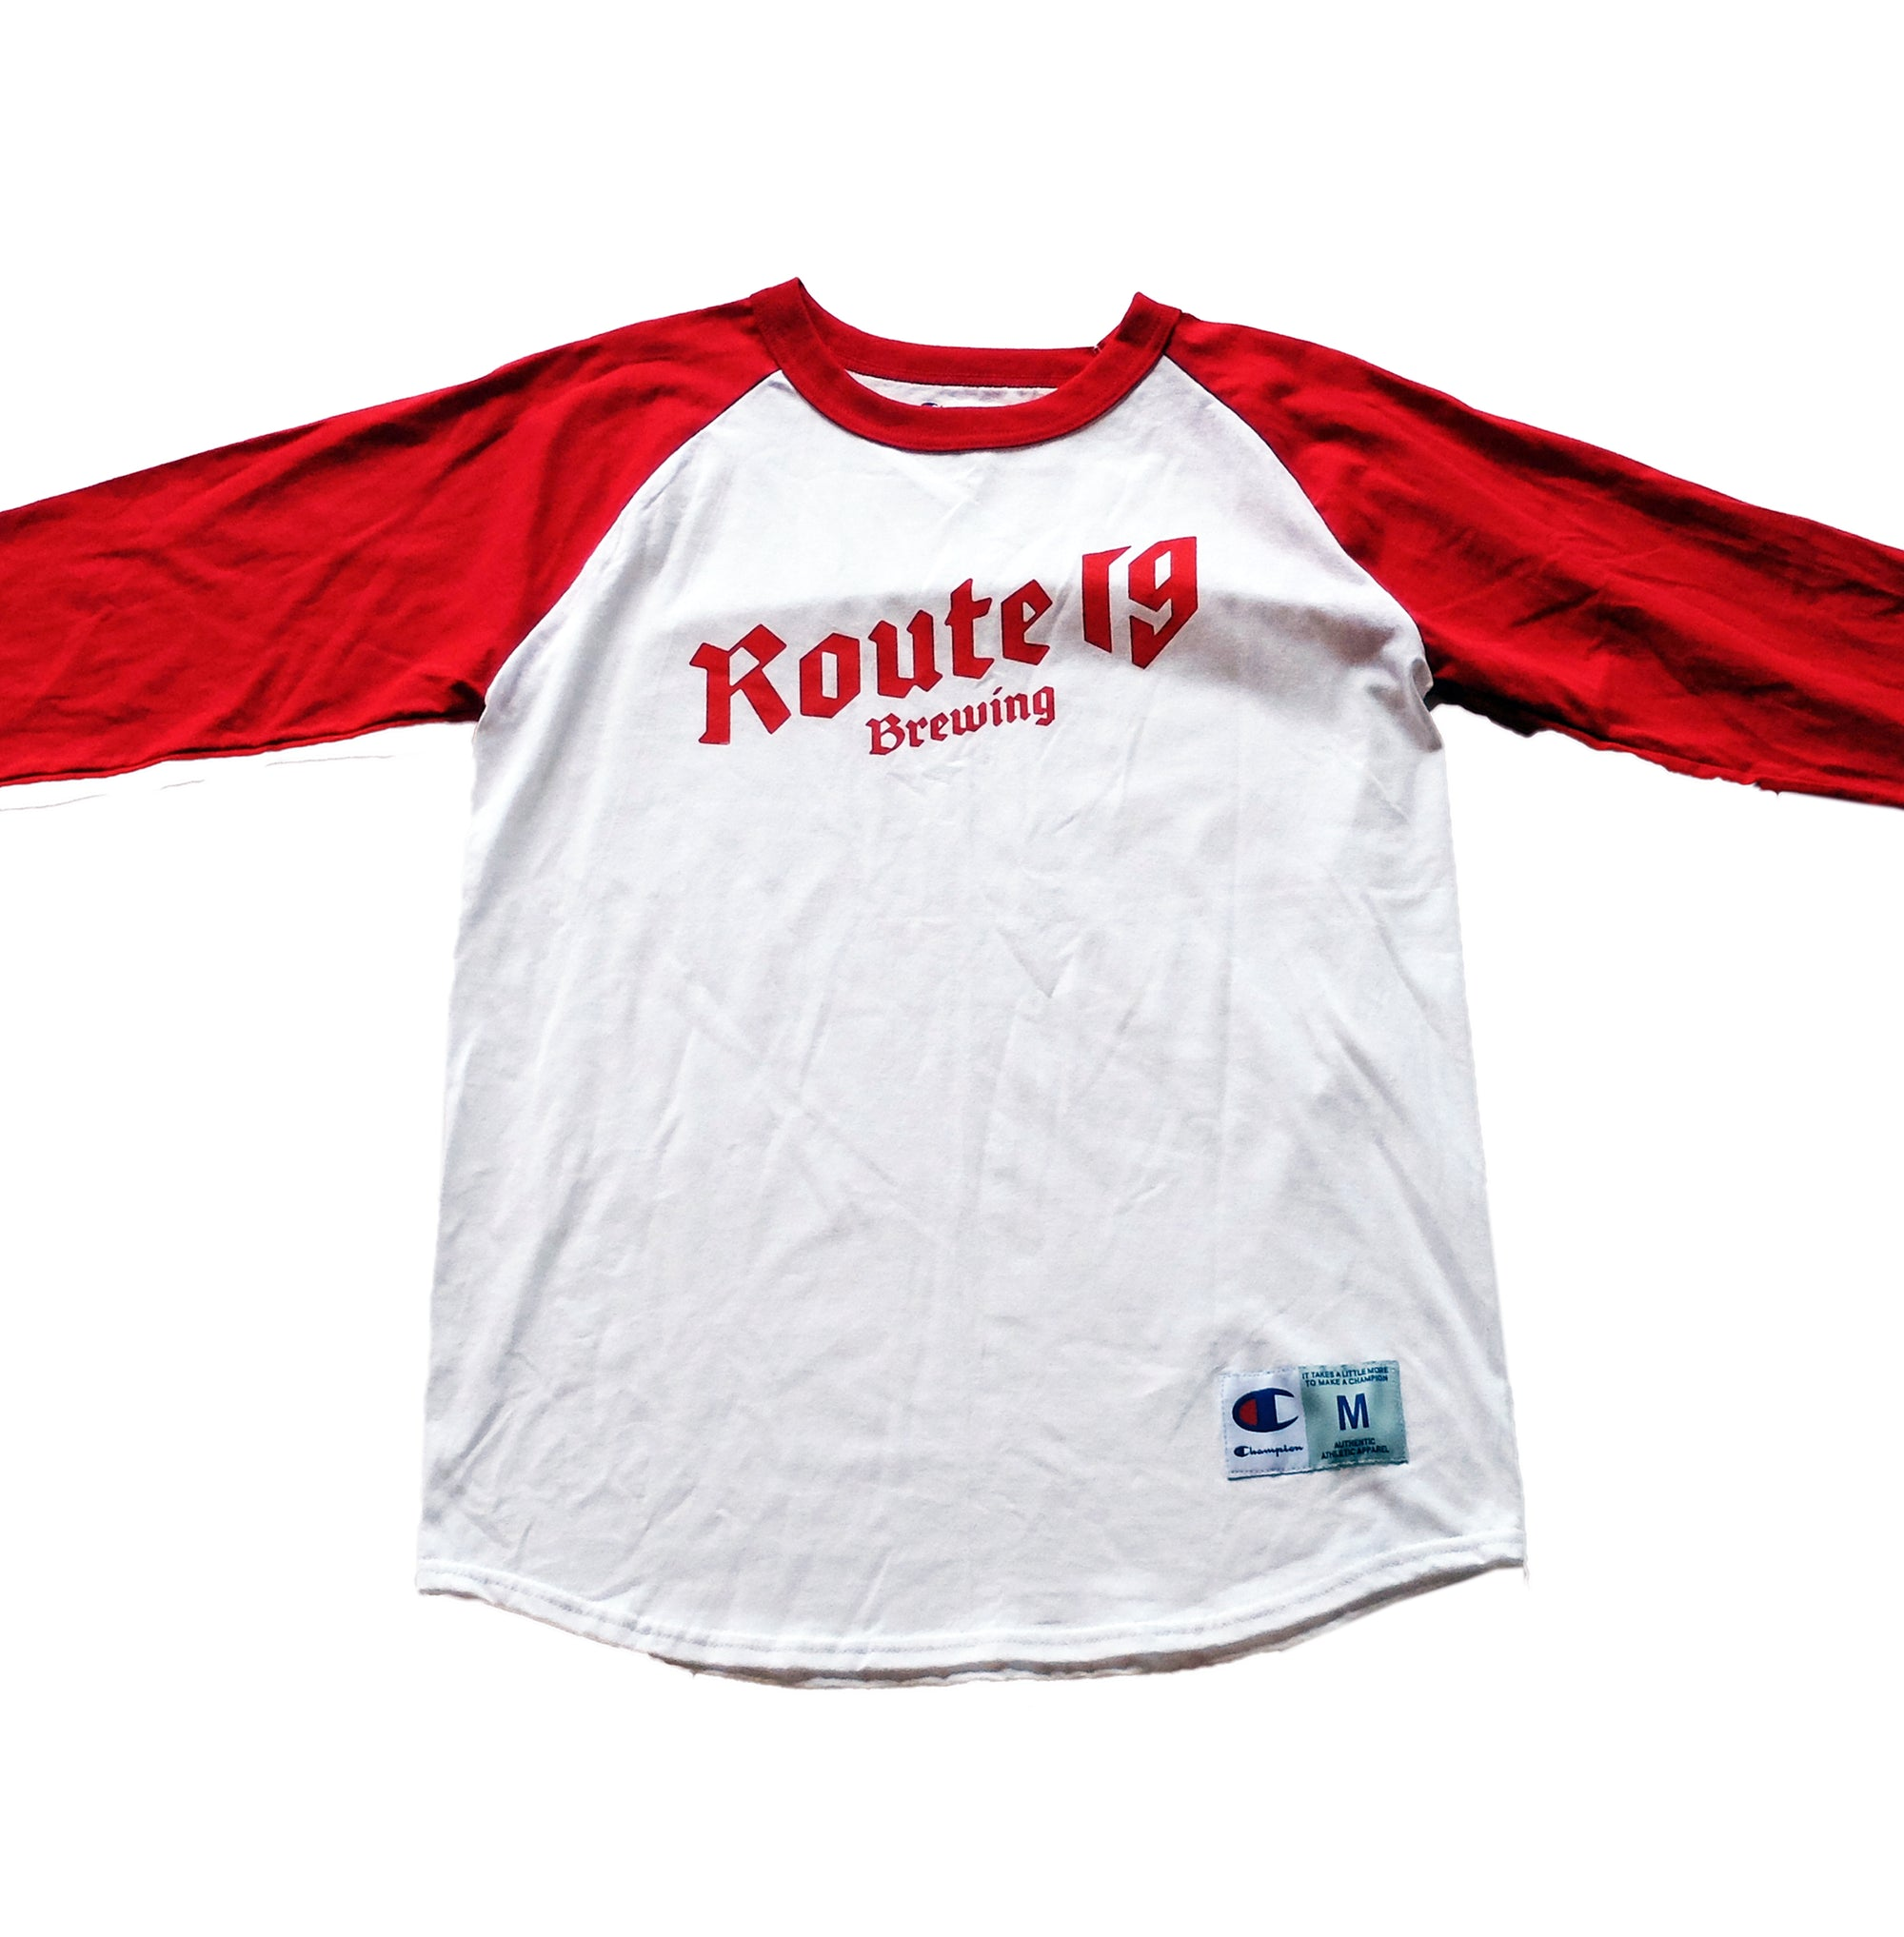 Baseball Shirt - Champion 'Route 19 Brewing'